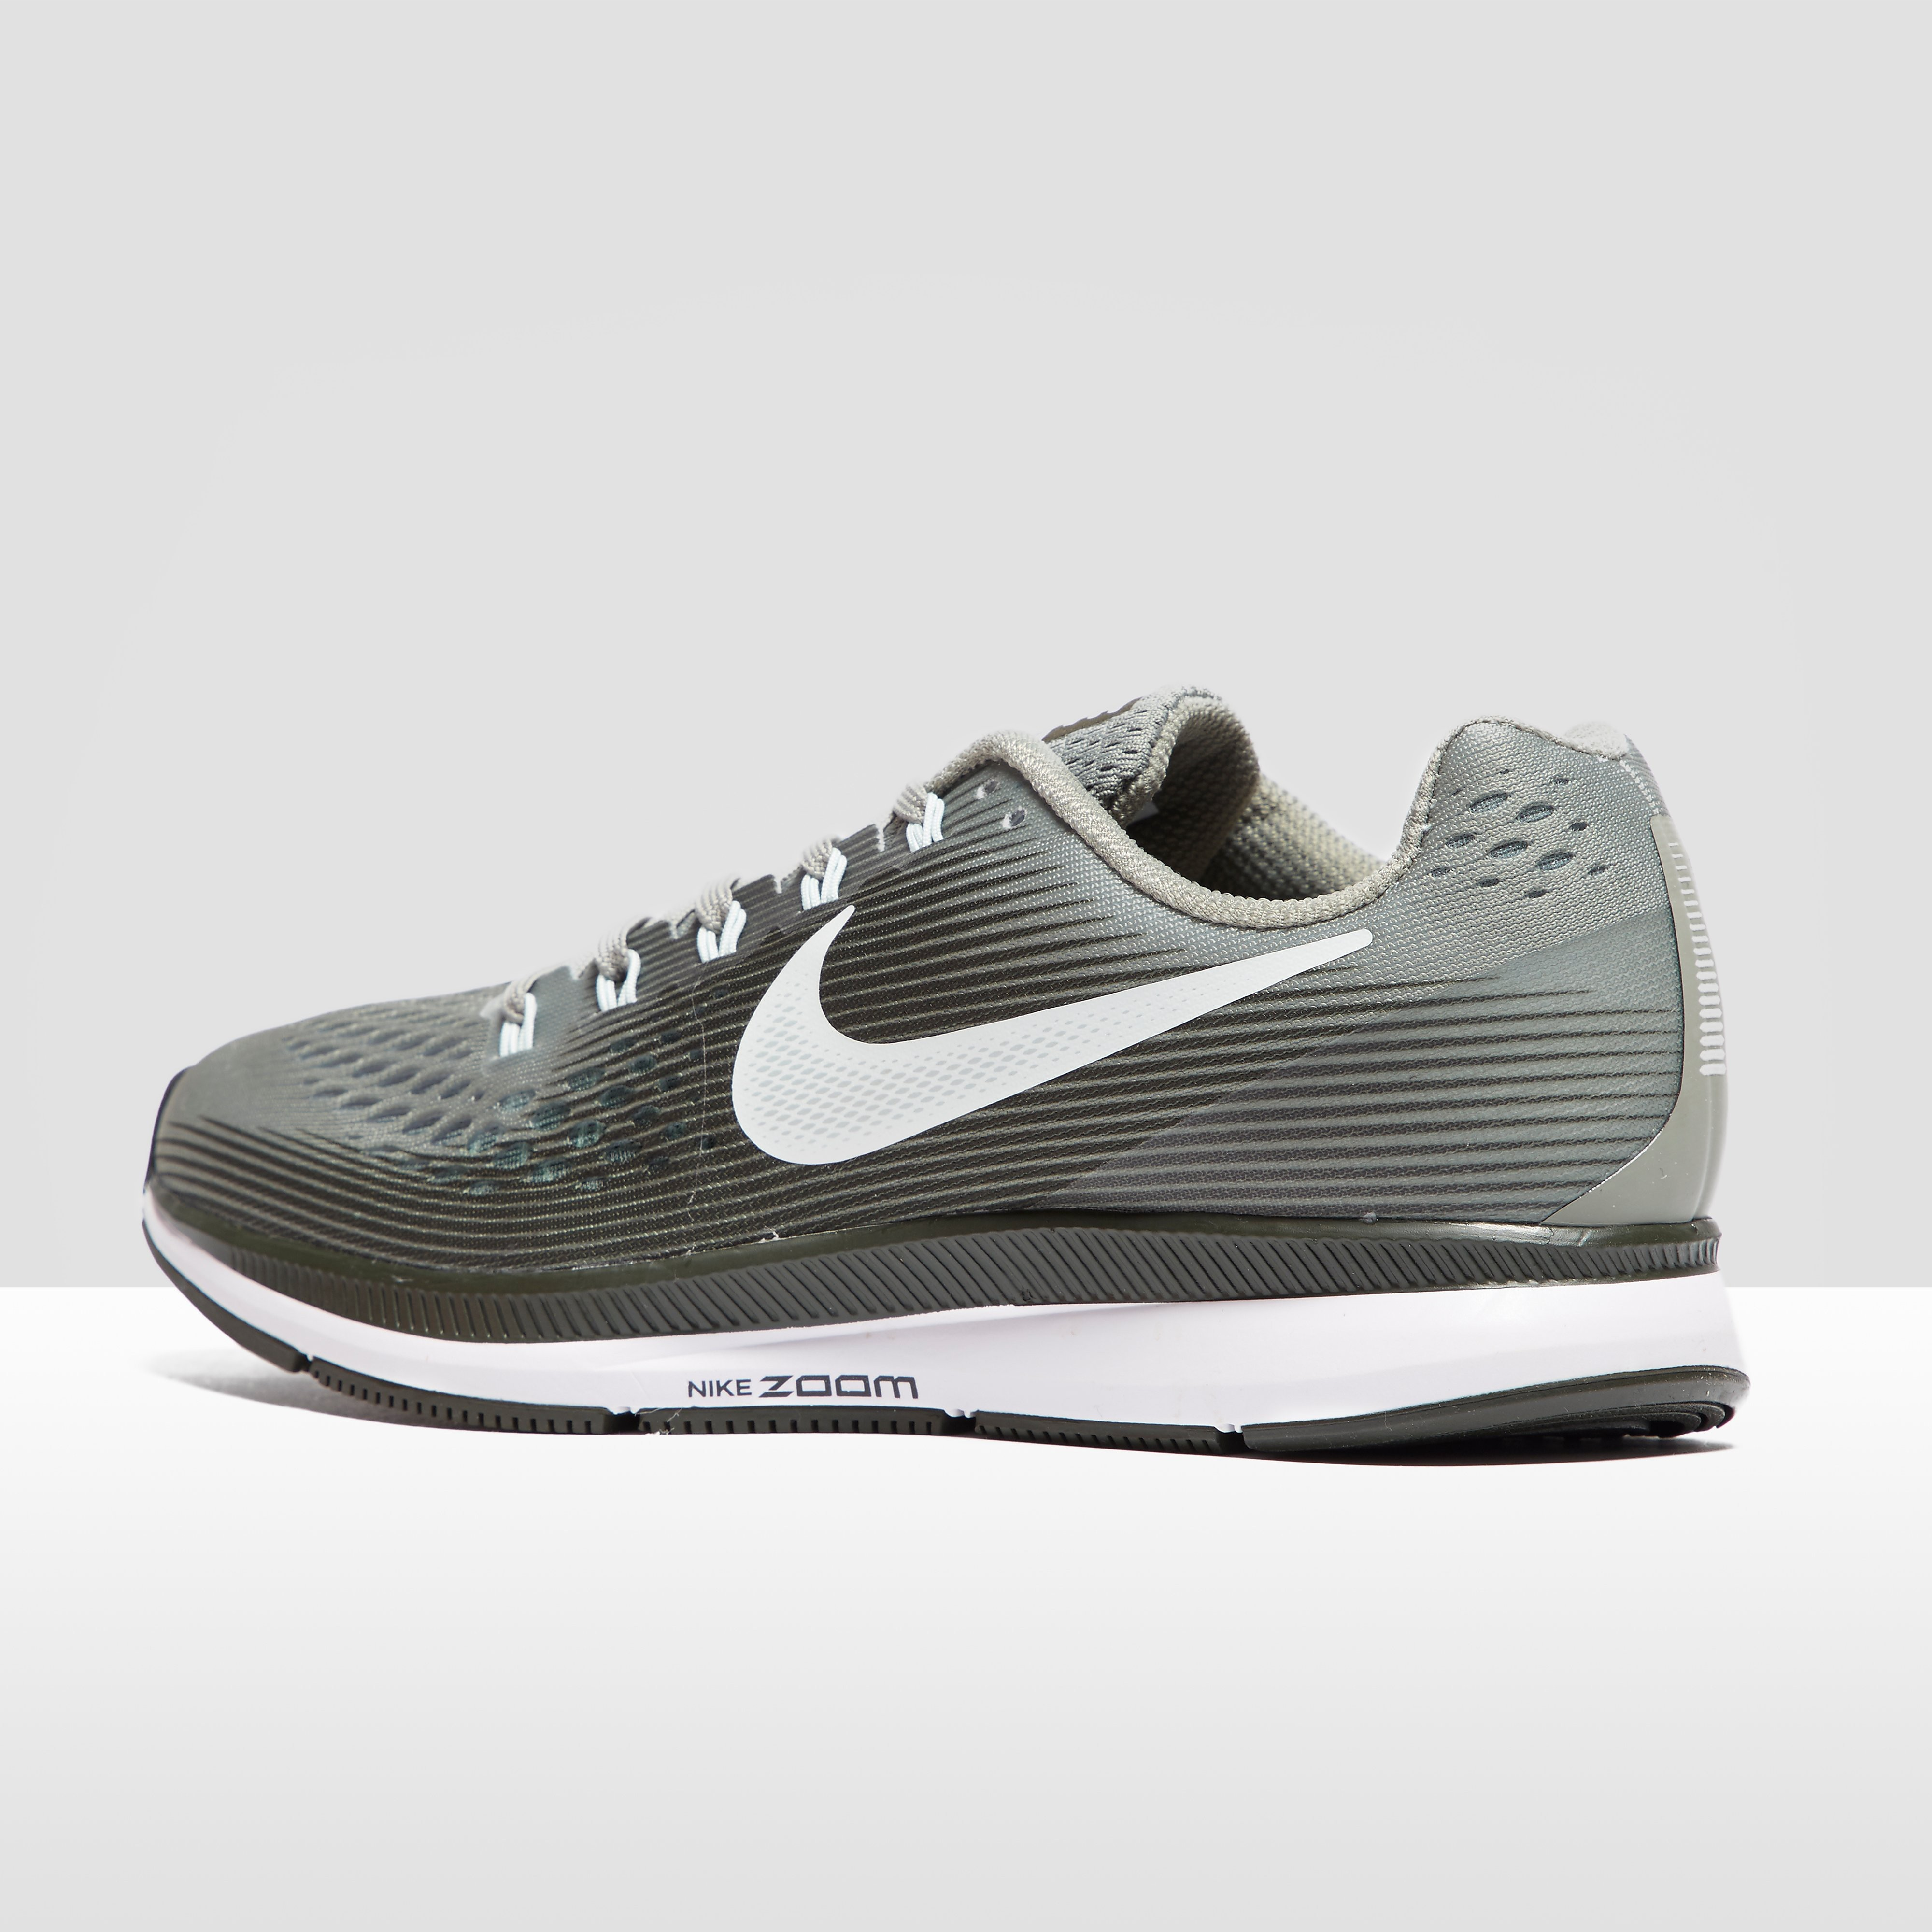 Nike Zoom Pegasus 34 Women's Running Shoes